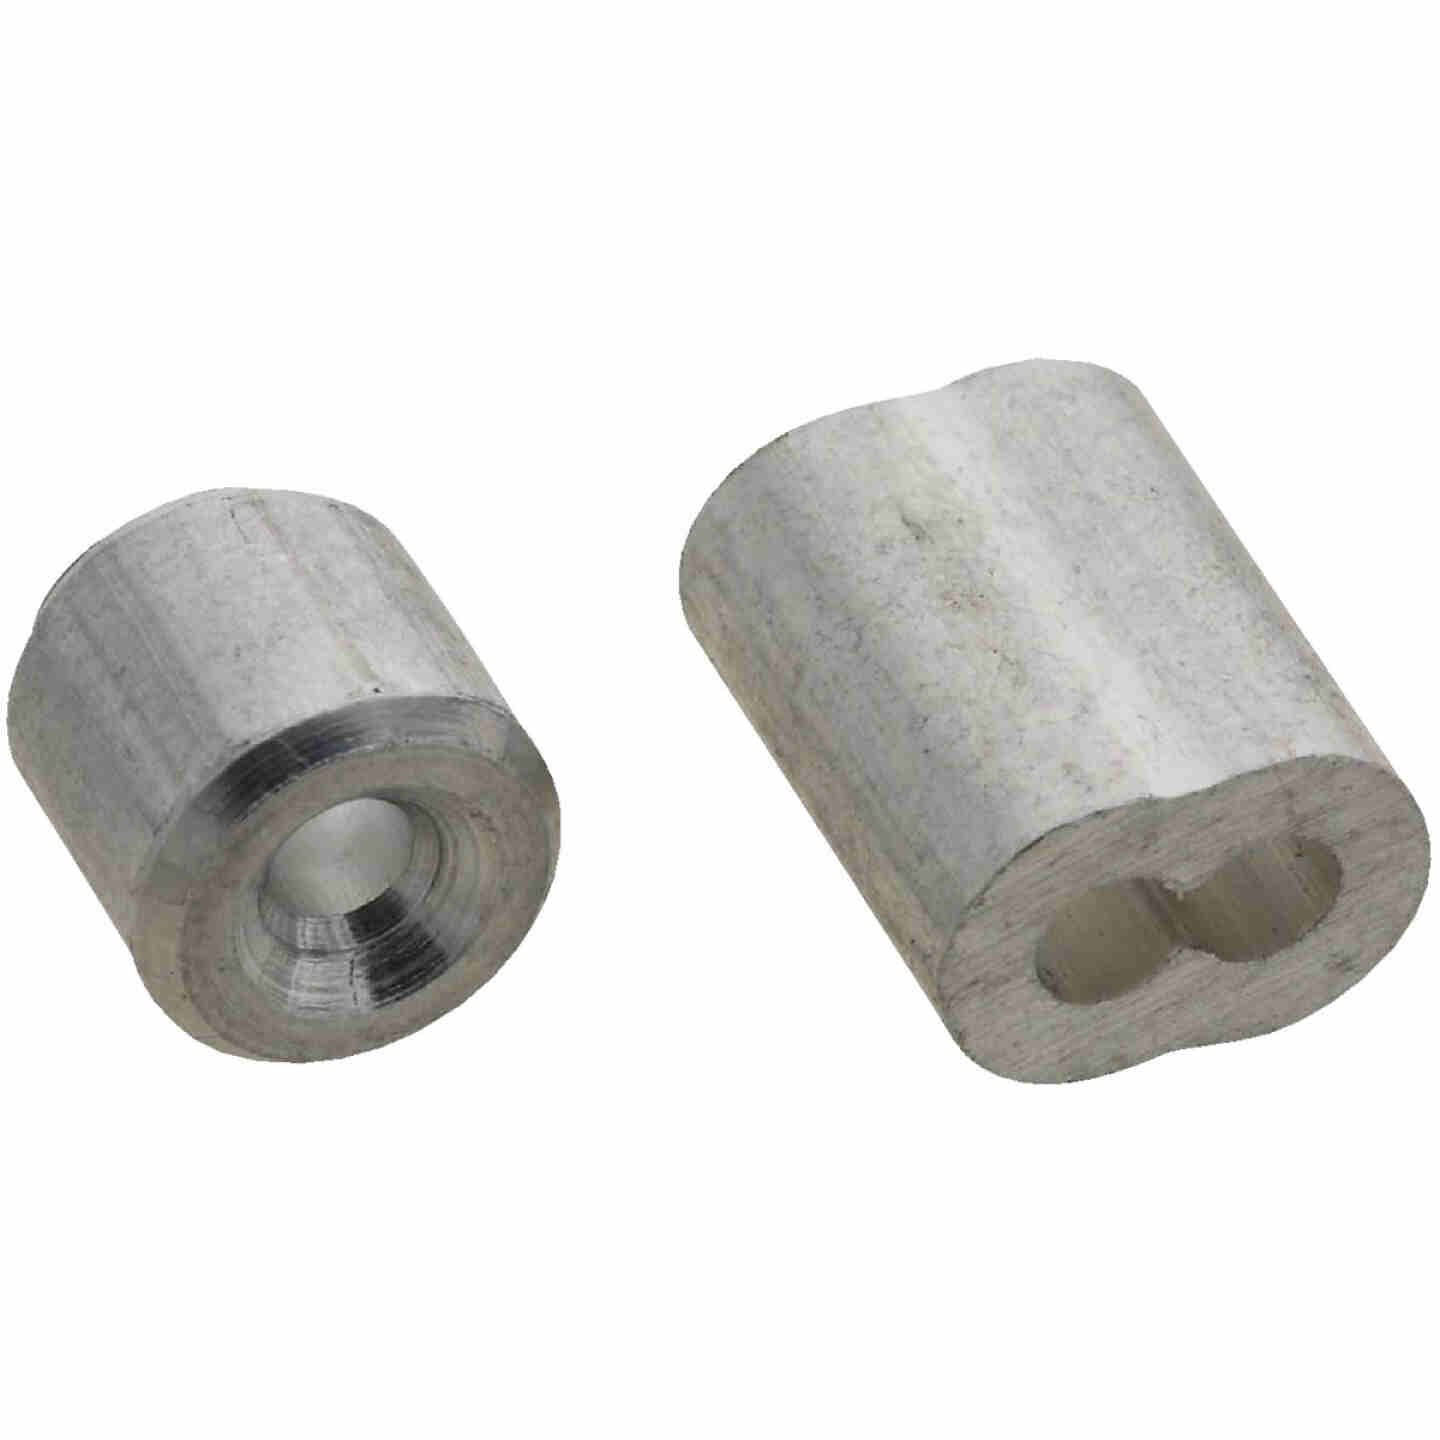 """Prime-Line Cable Ferrules and Stops, 3/32"""", Aluminum Image 1"""